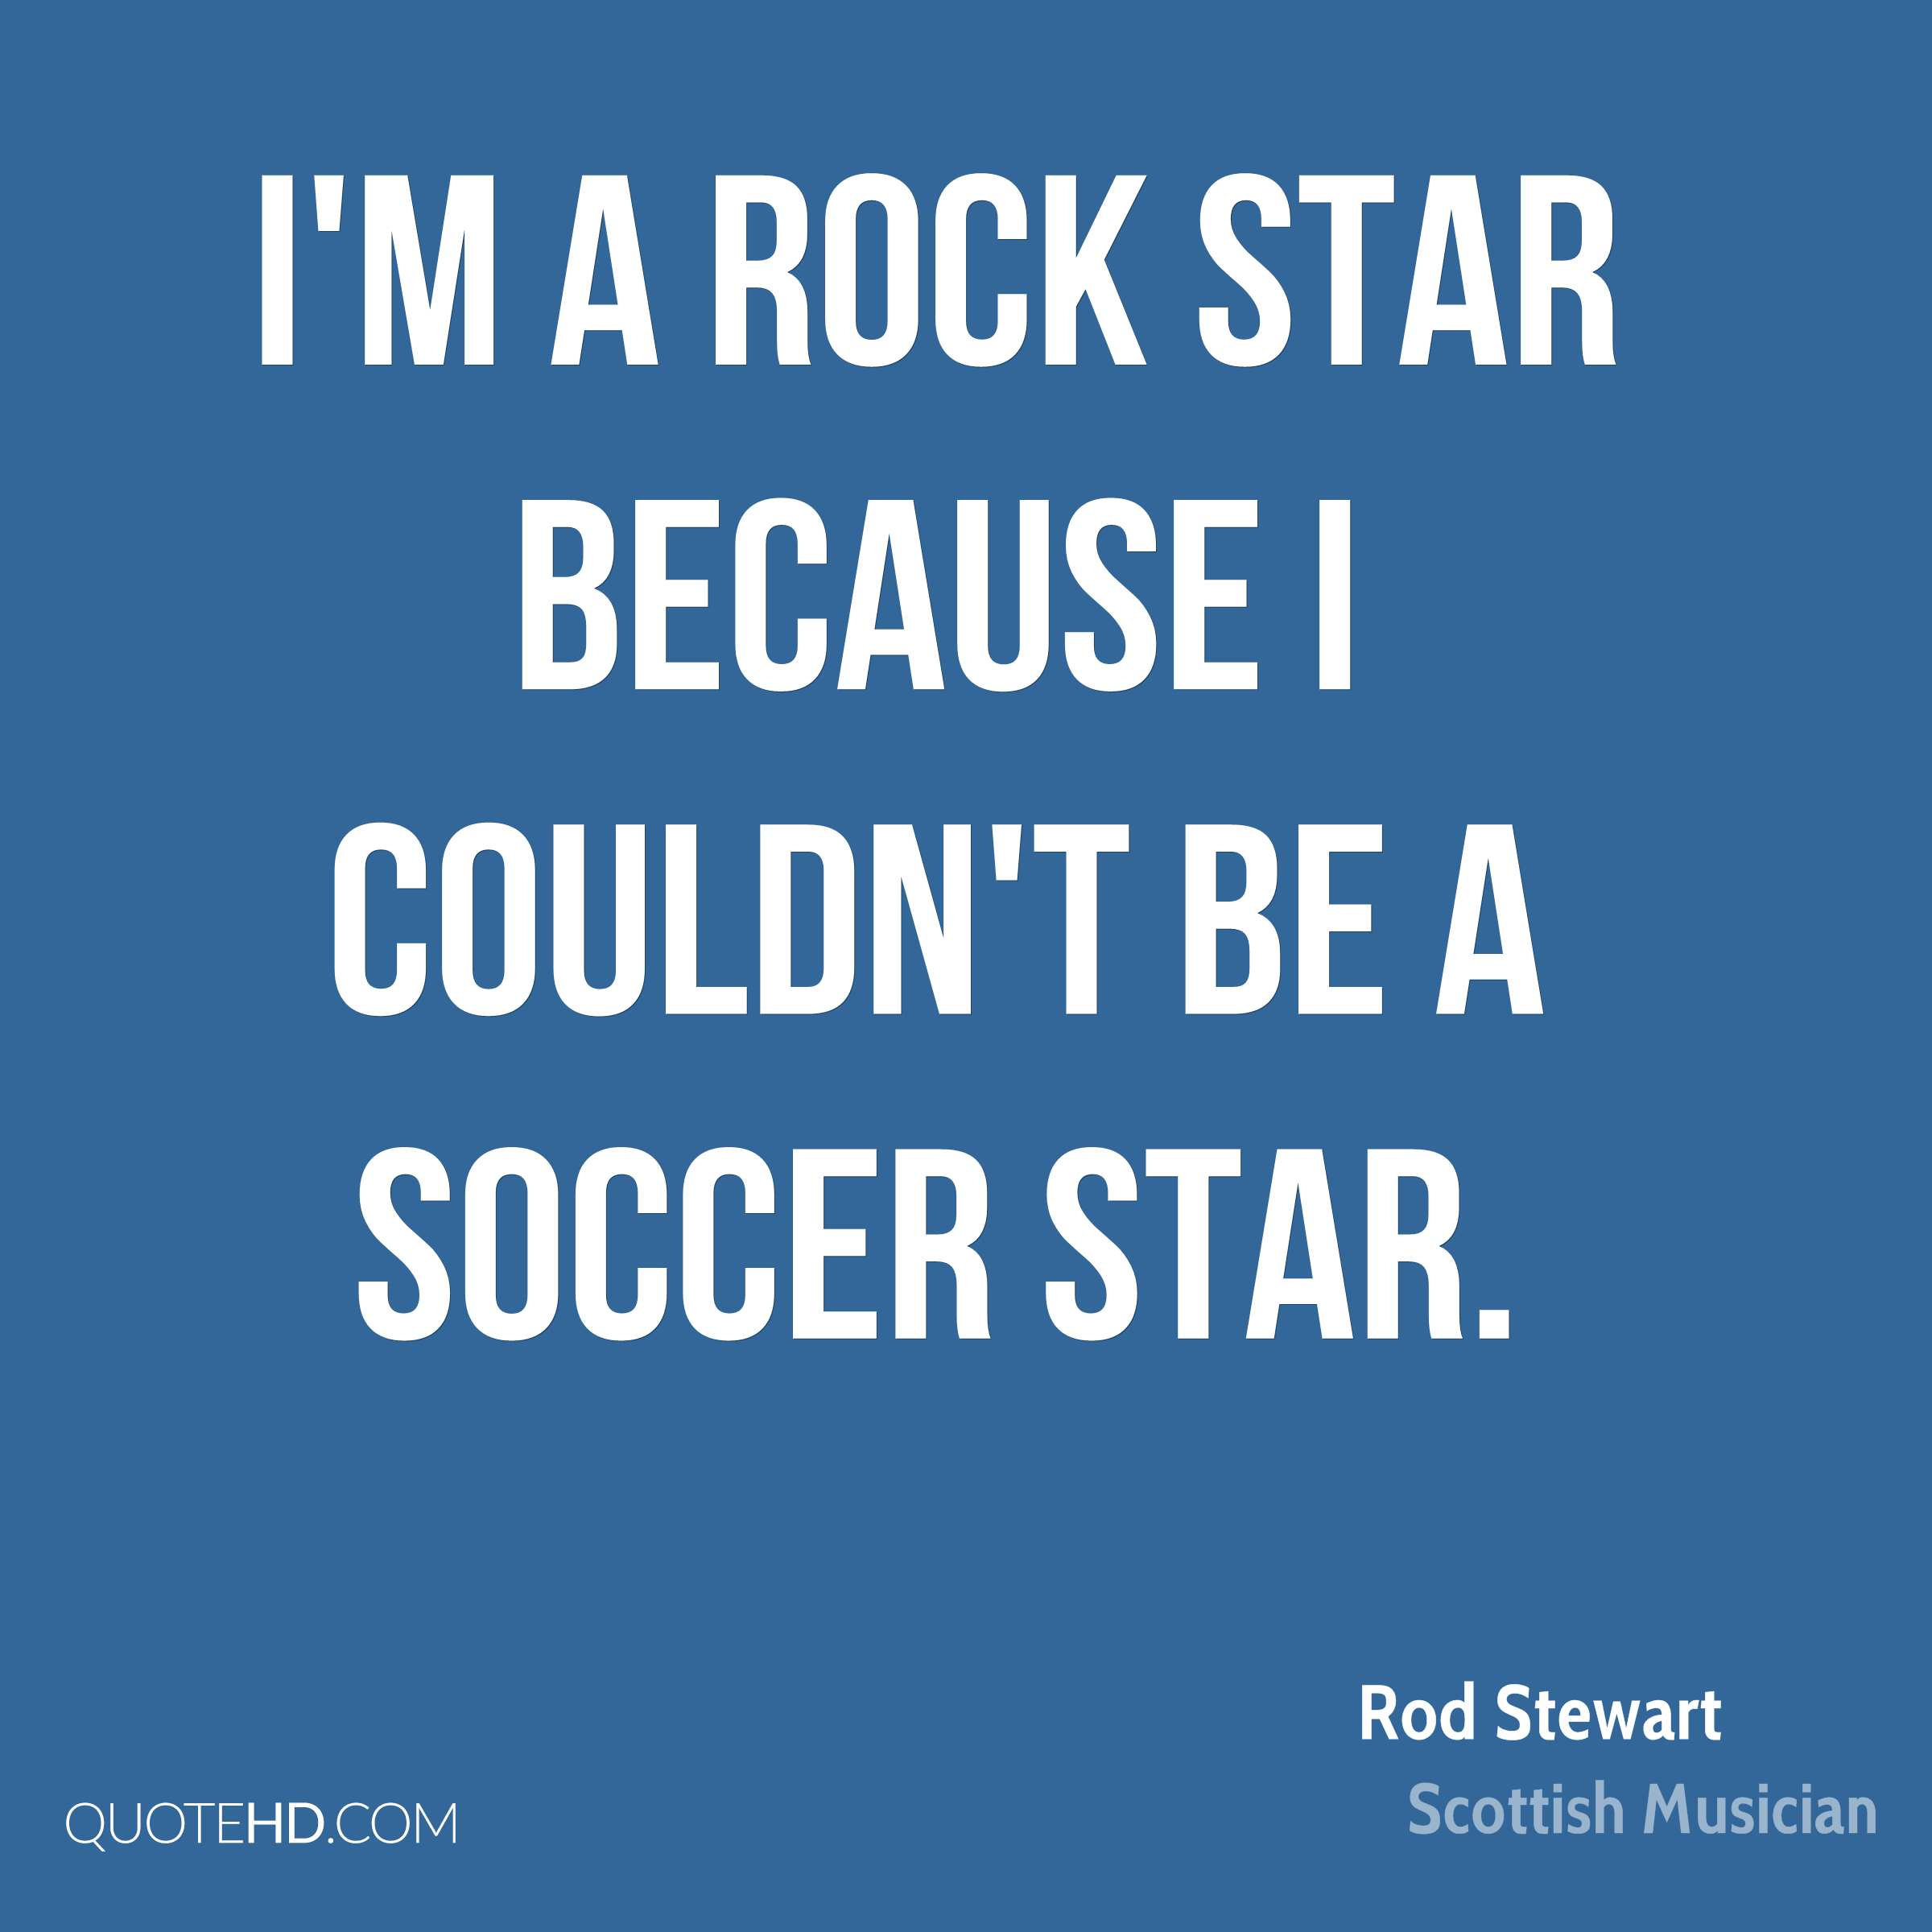 I'm a rock star because I couldn't be a soccer star.